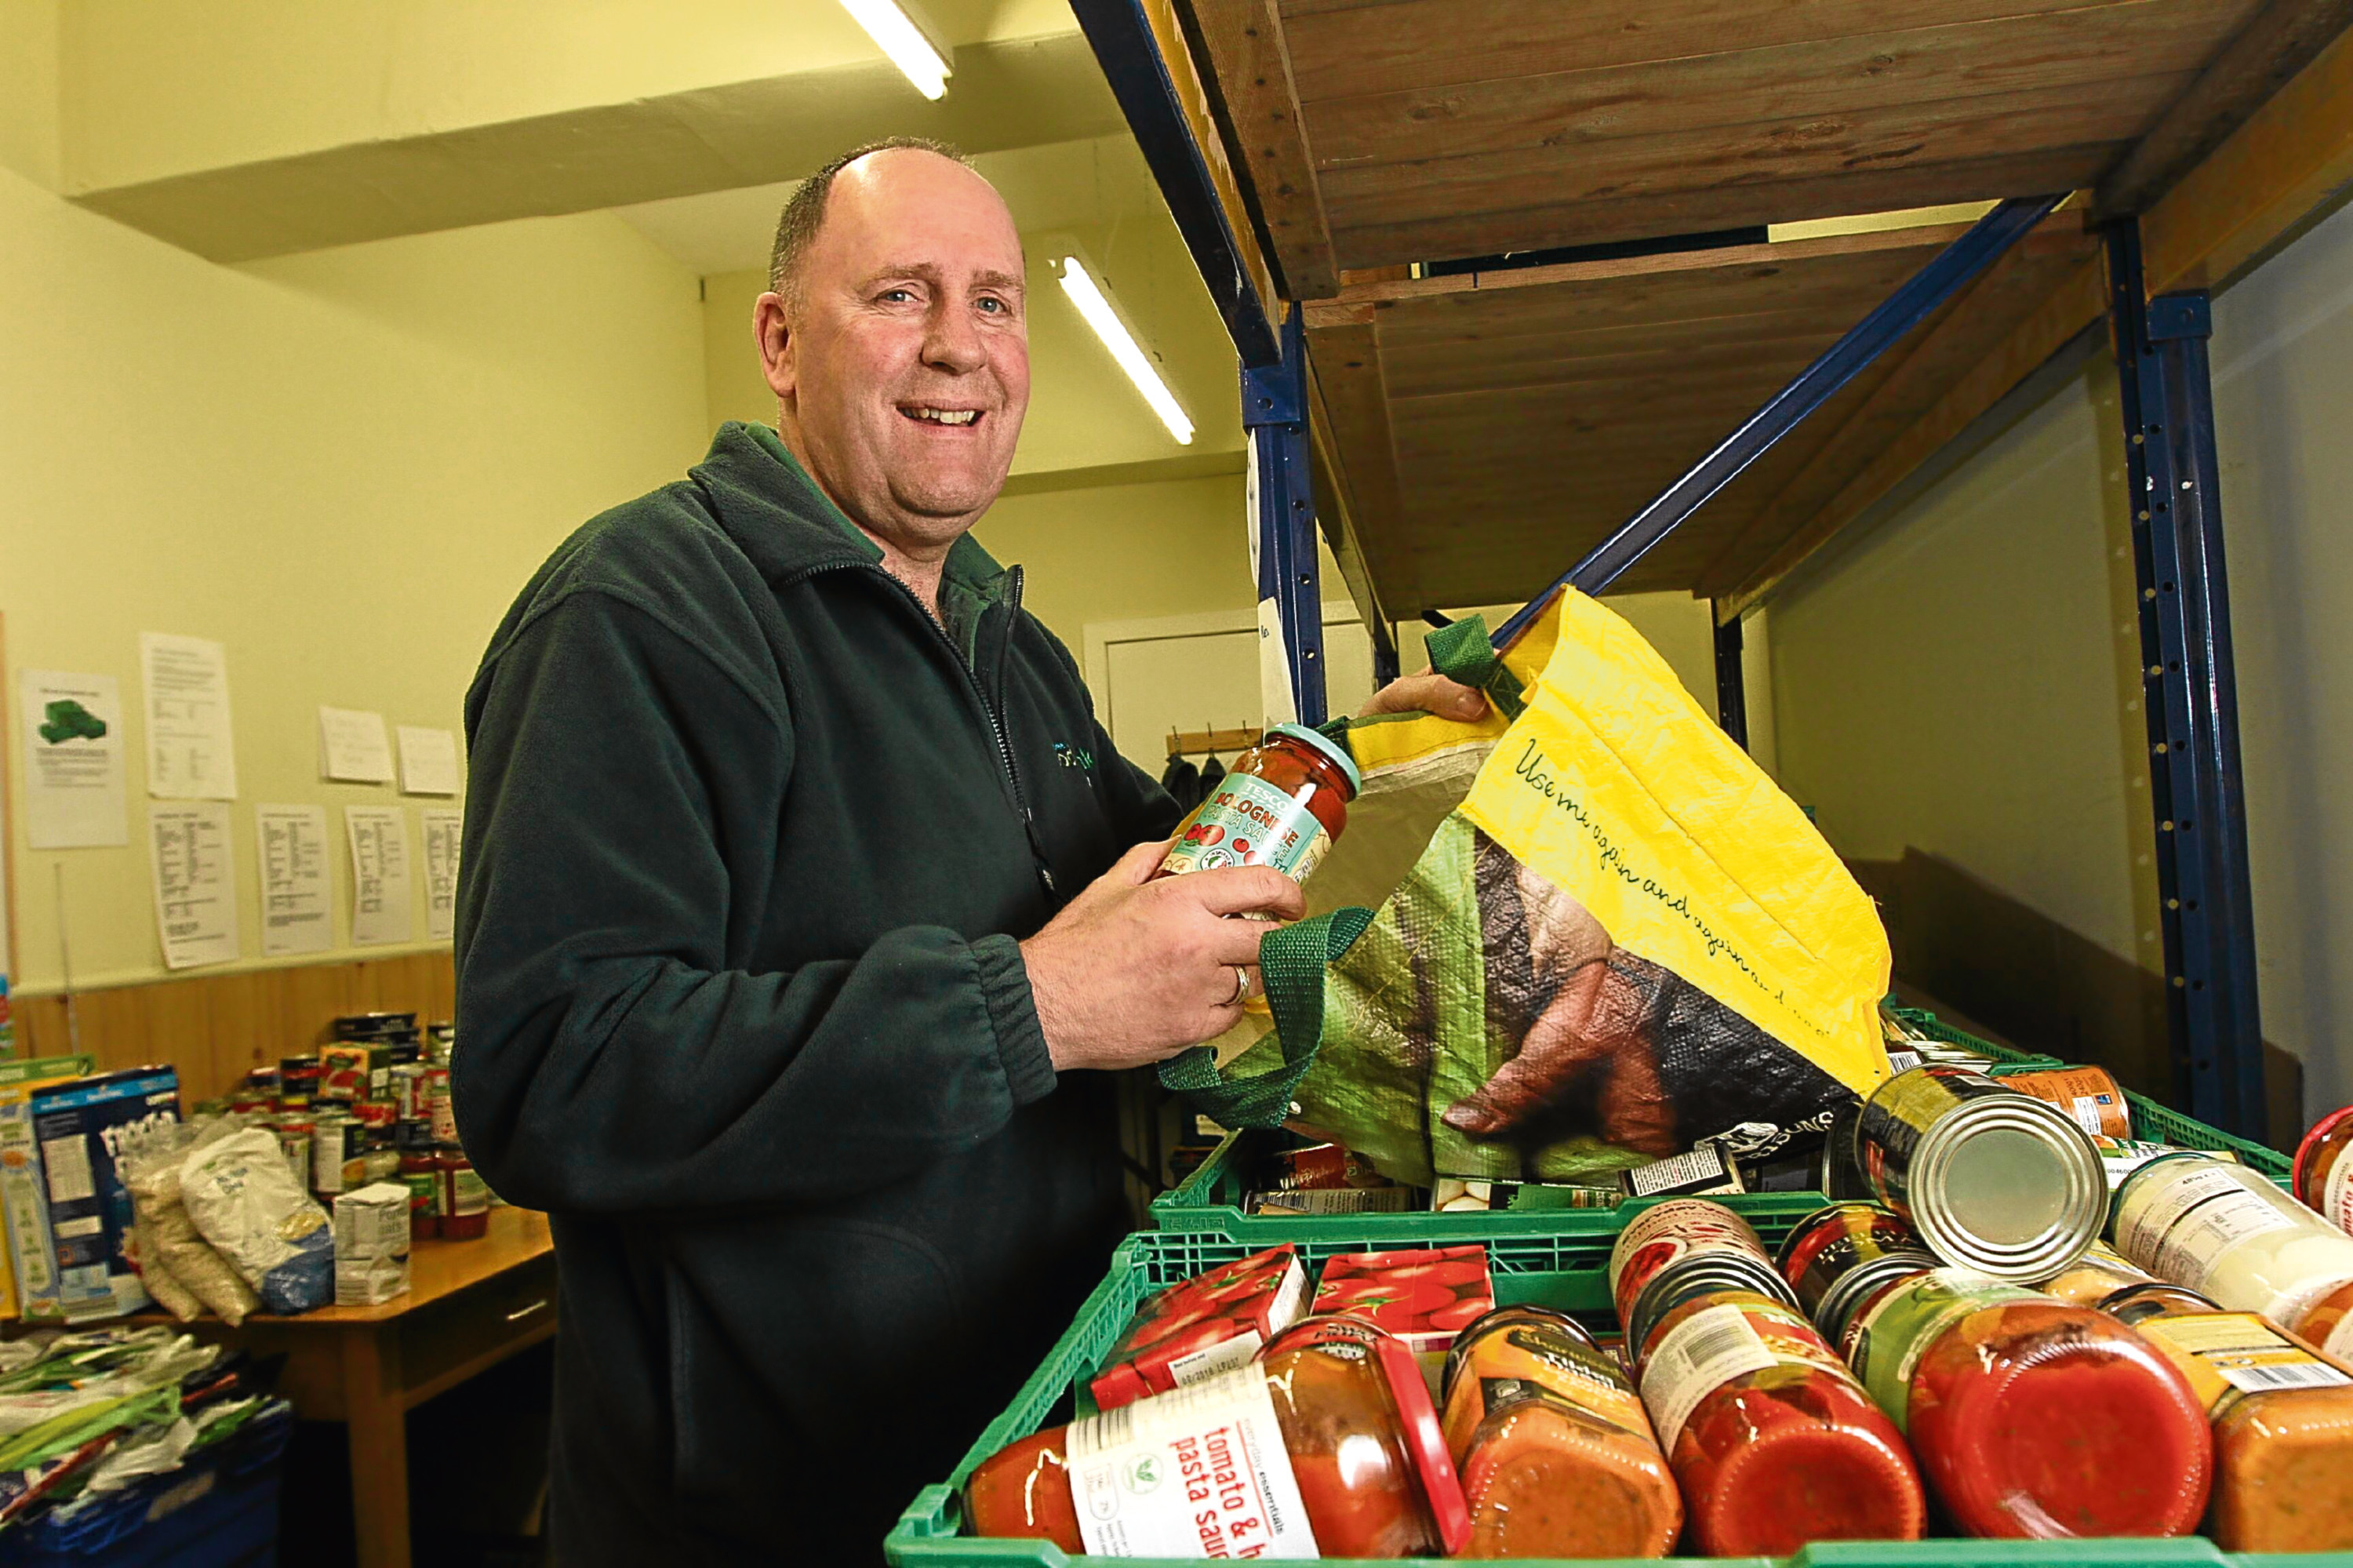 Ken Linton said volunteers at the foodbank are particularly worried about the rise in child poverty in Dundee.